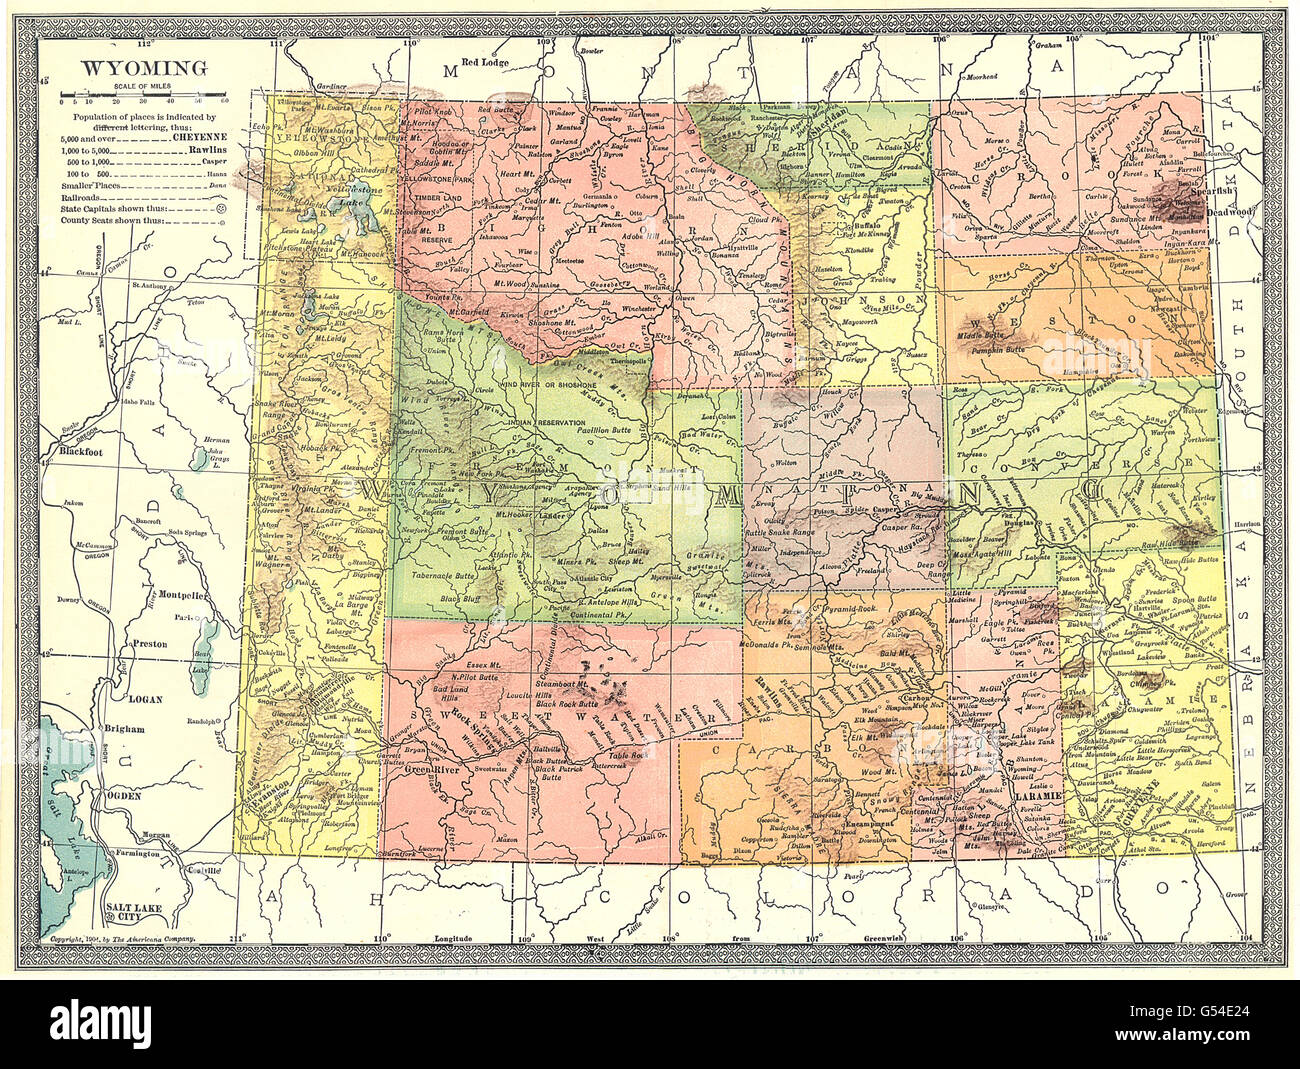 WYOMING state map. Counties, 1907 Stock Photo: 106434332 - Alamy